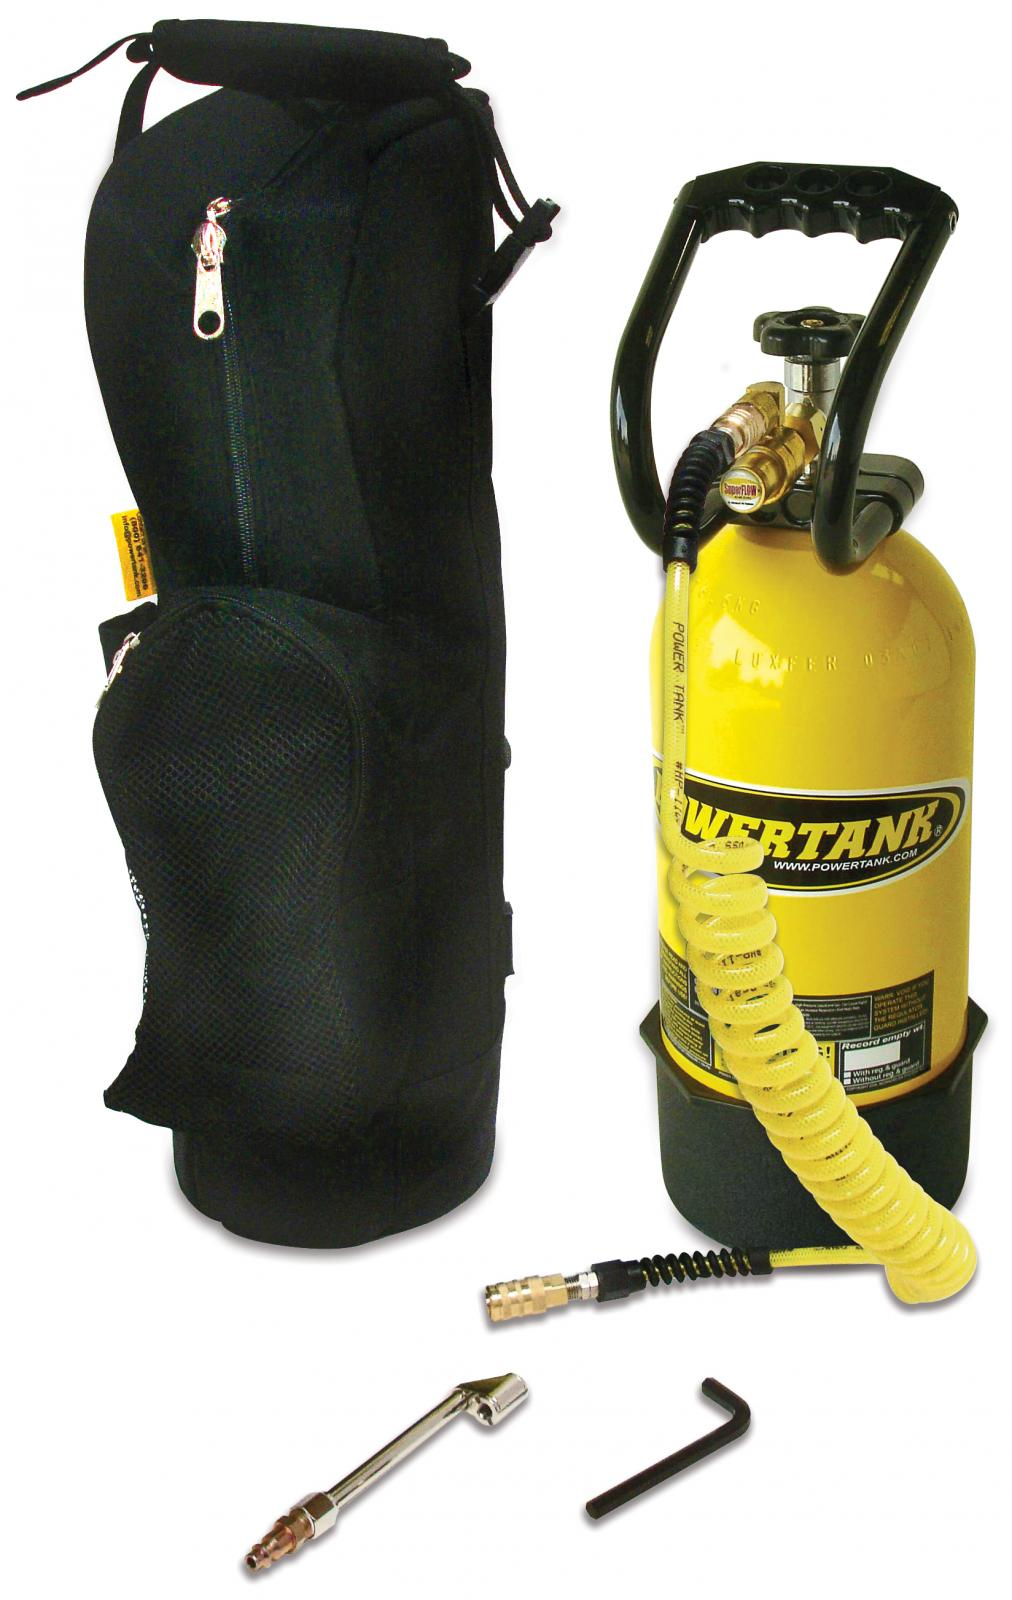 CO2 Tank 10 LB RV Silver Package Team Yellow Power Tank